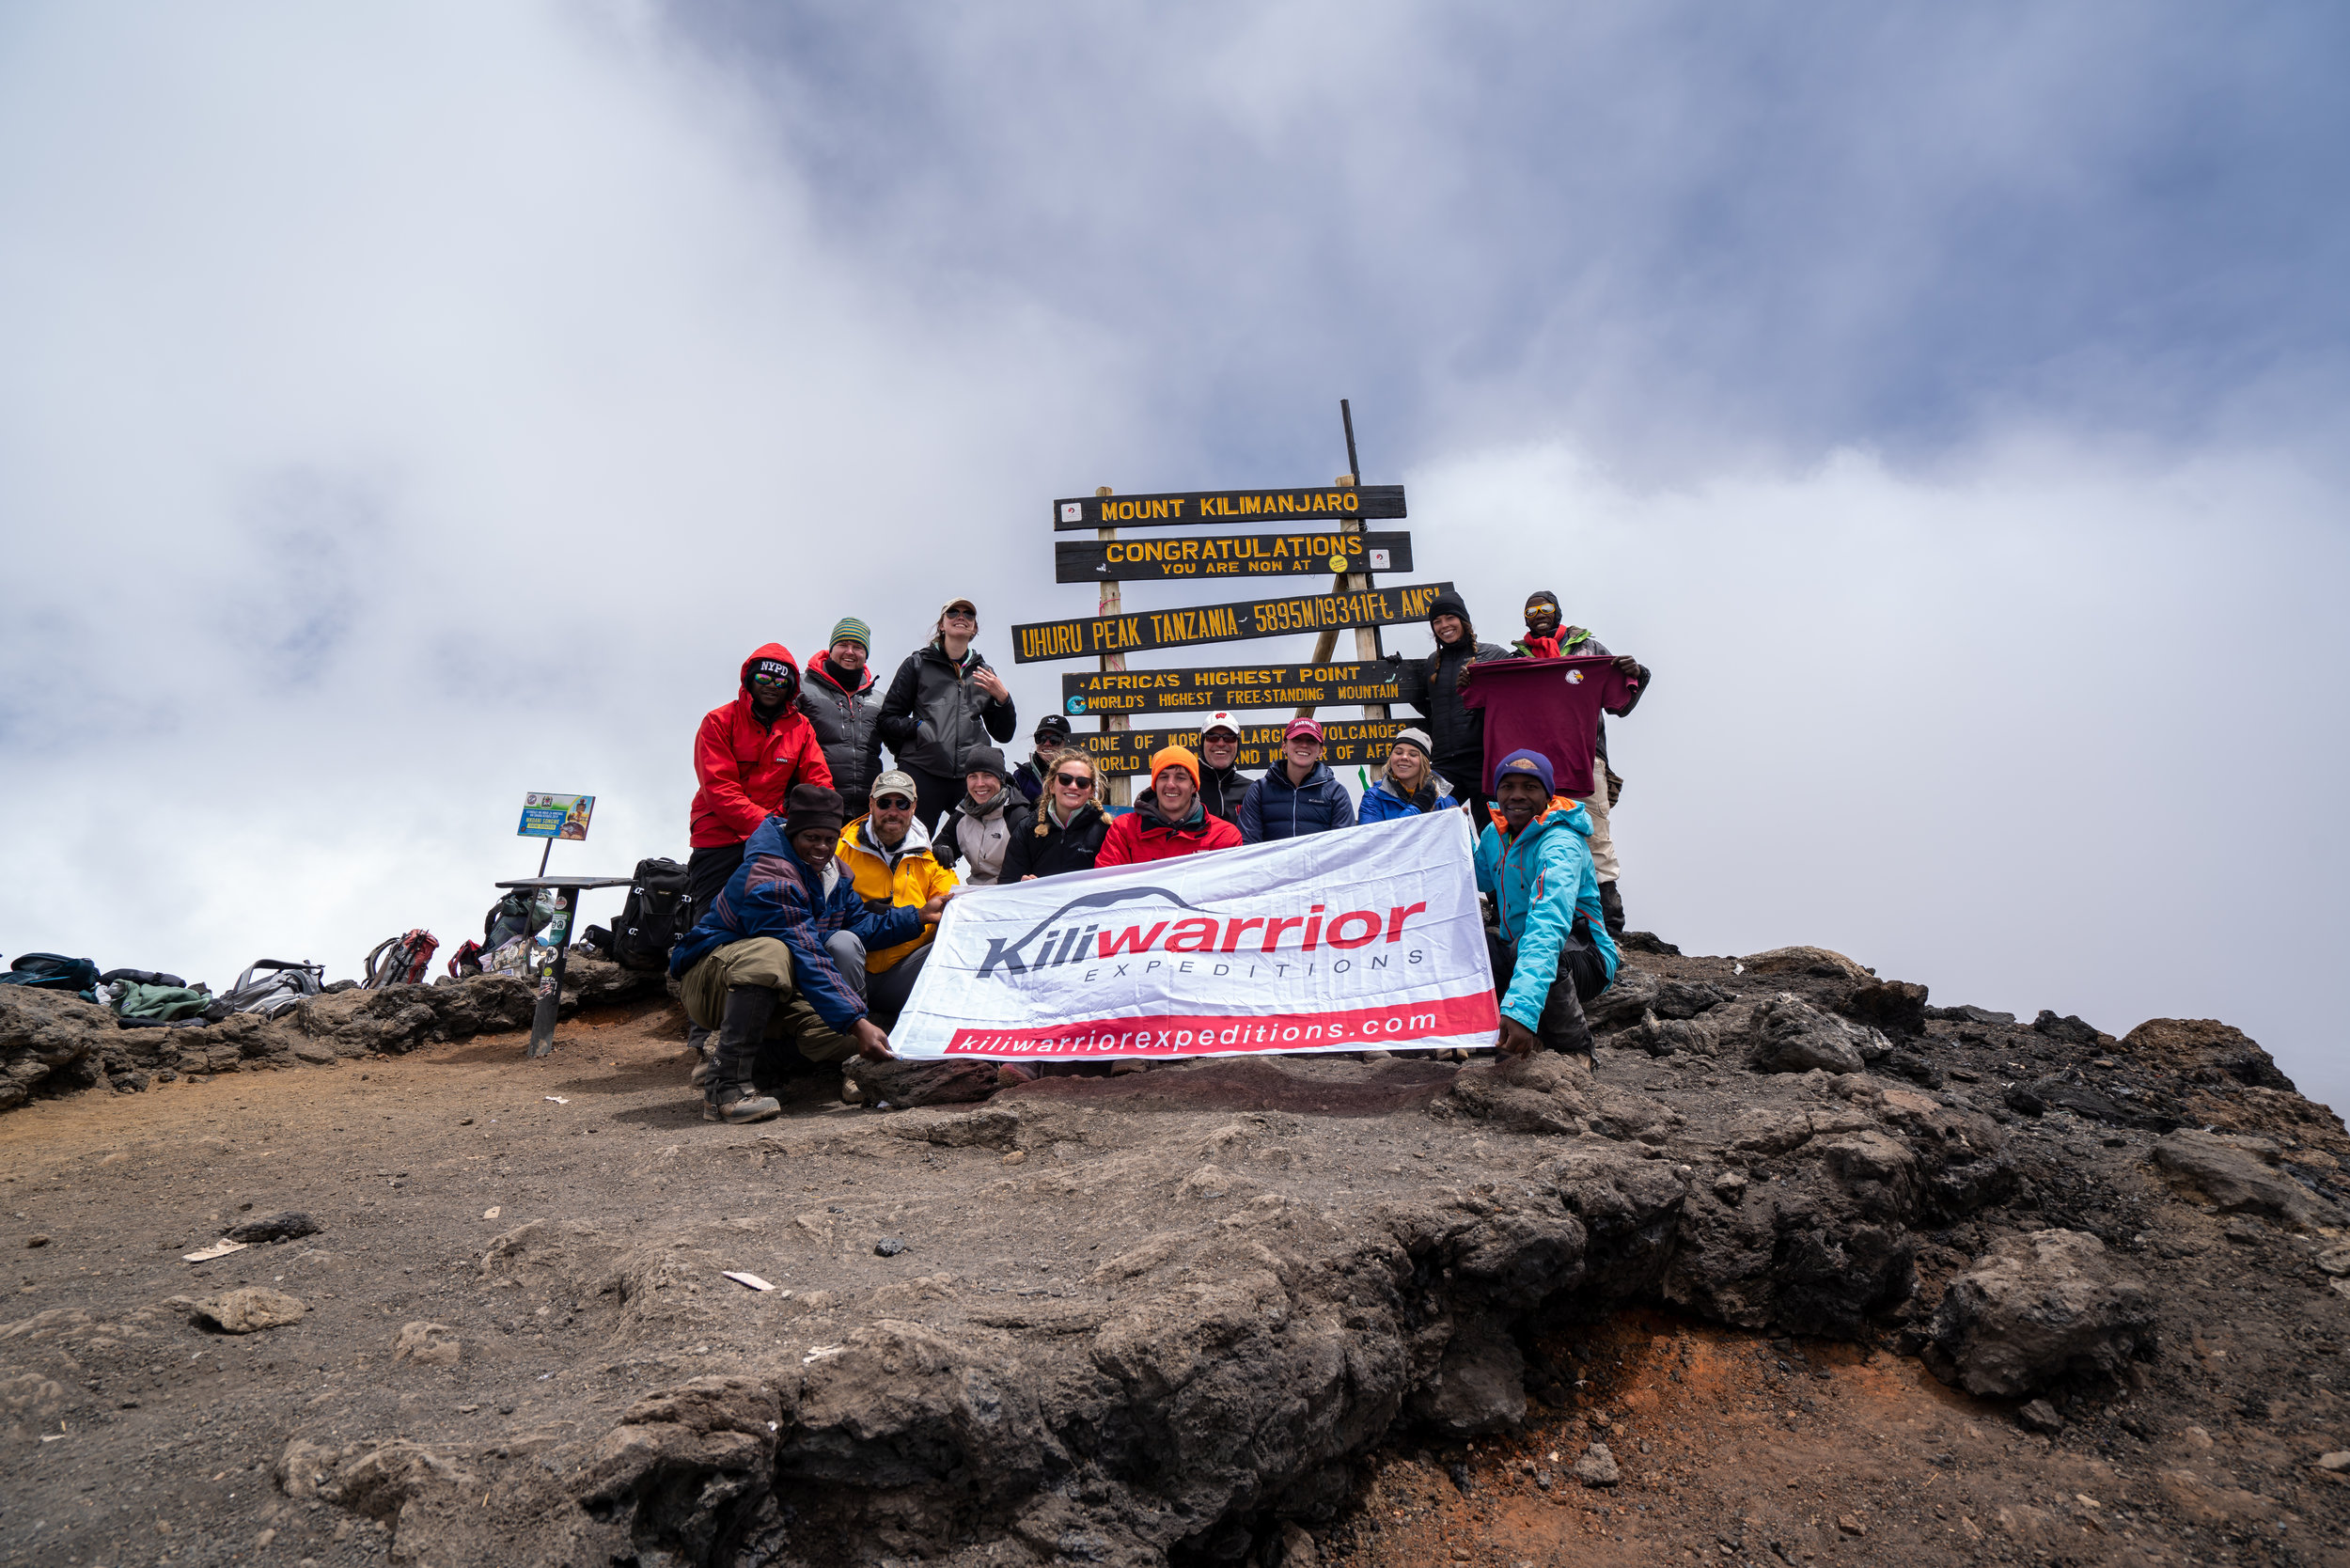 All 11 clients summiting successfully!